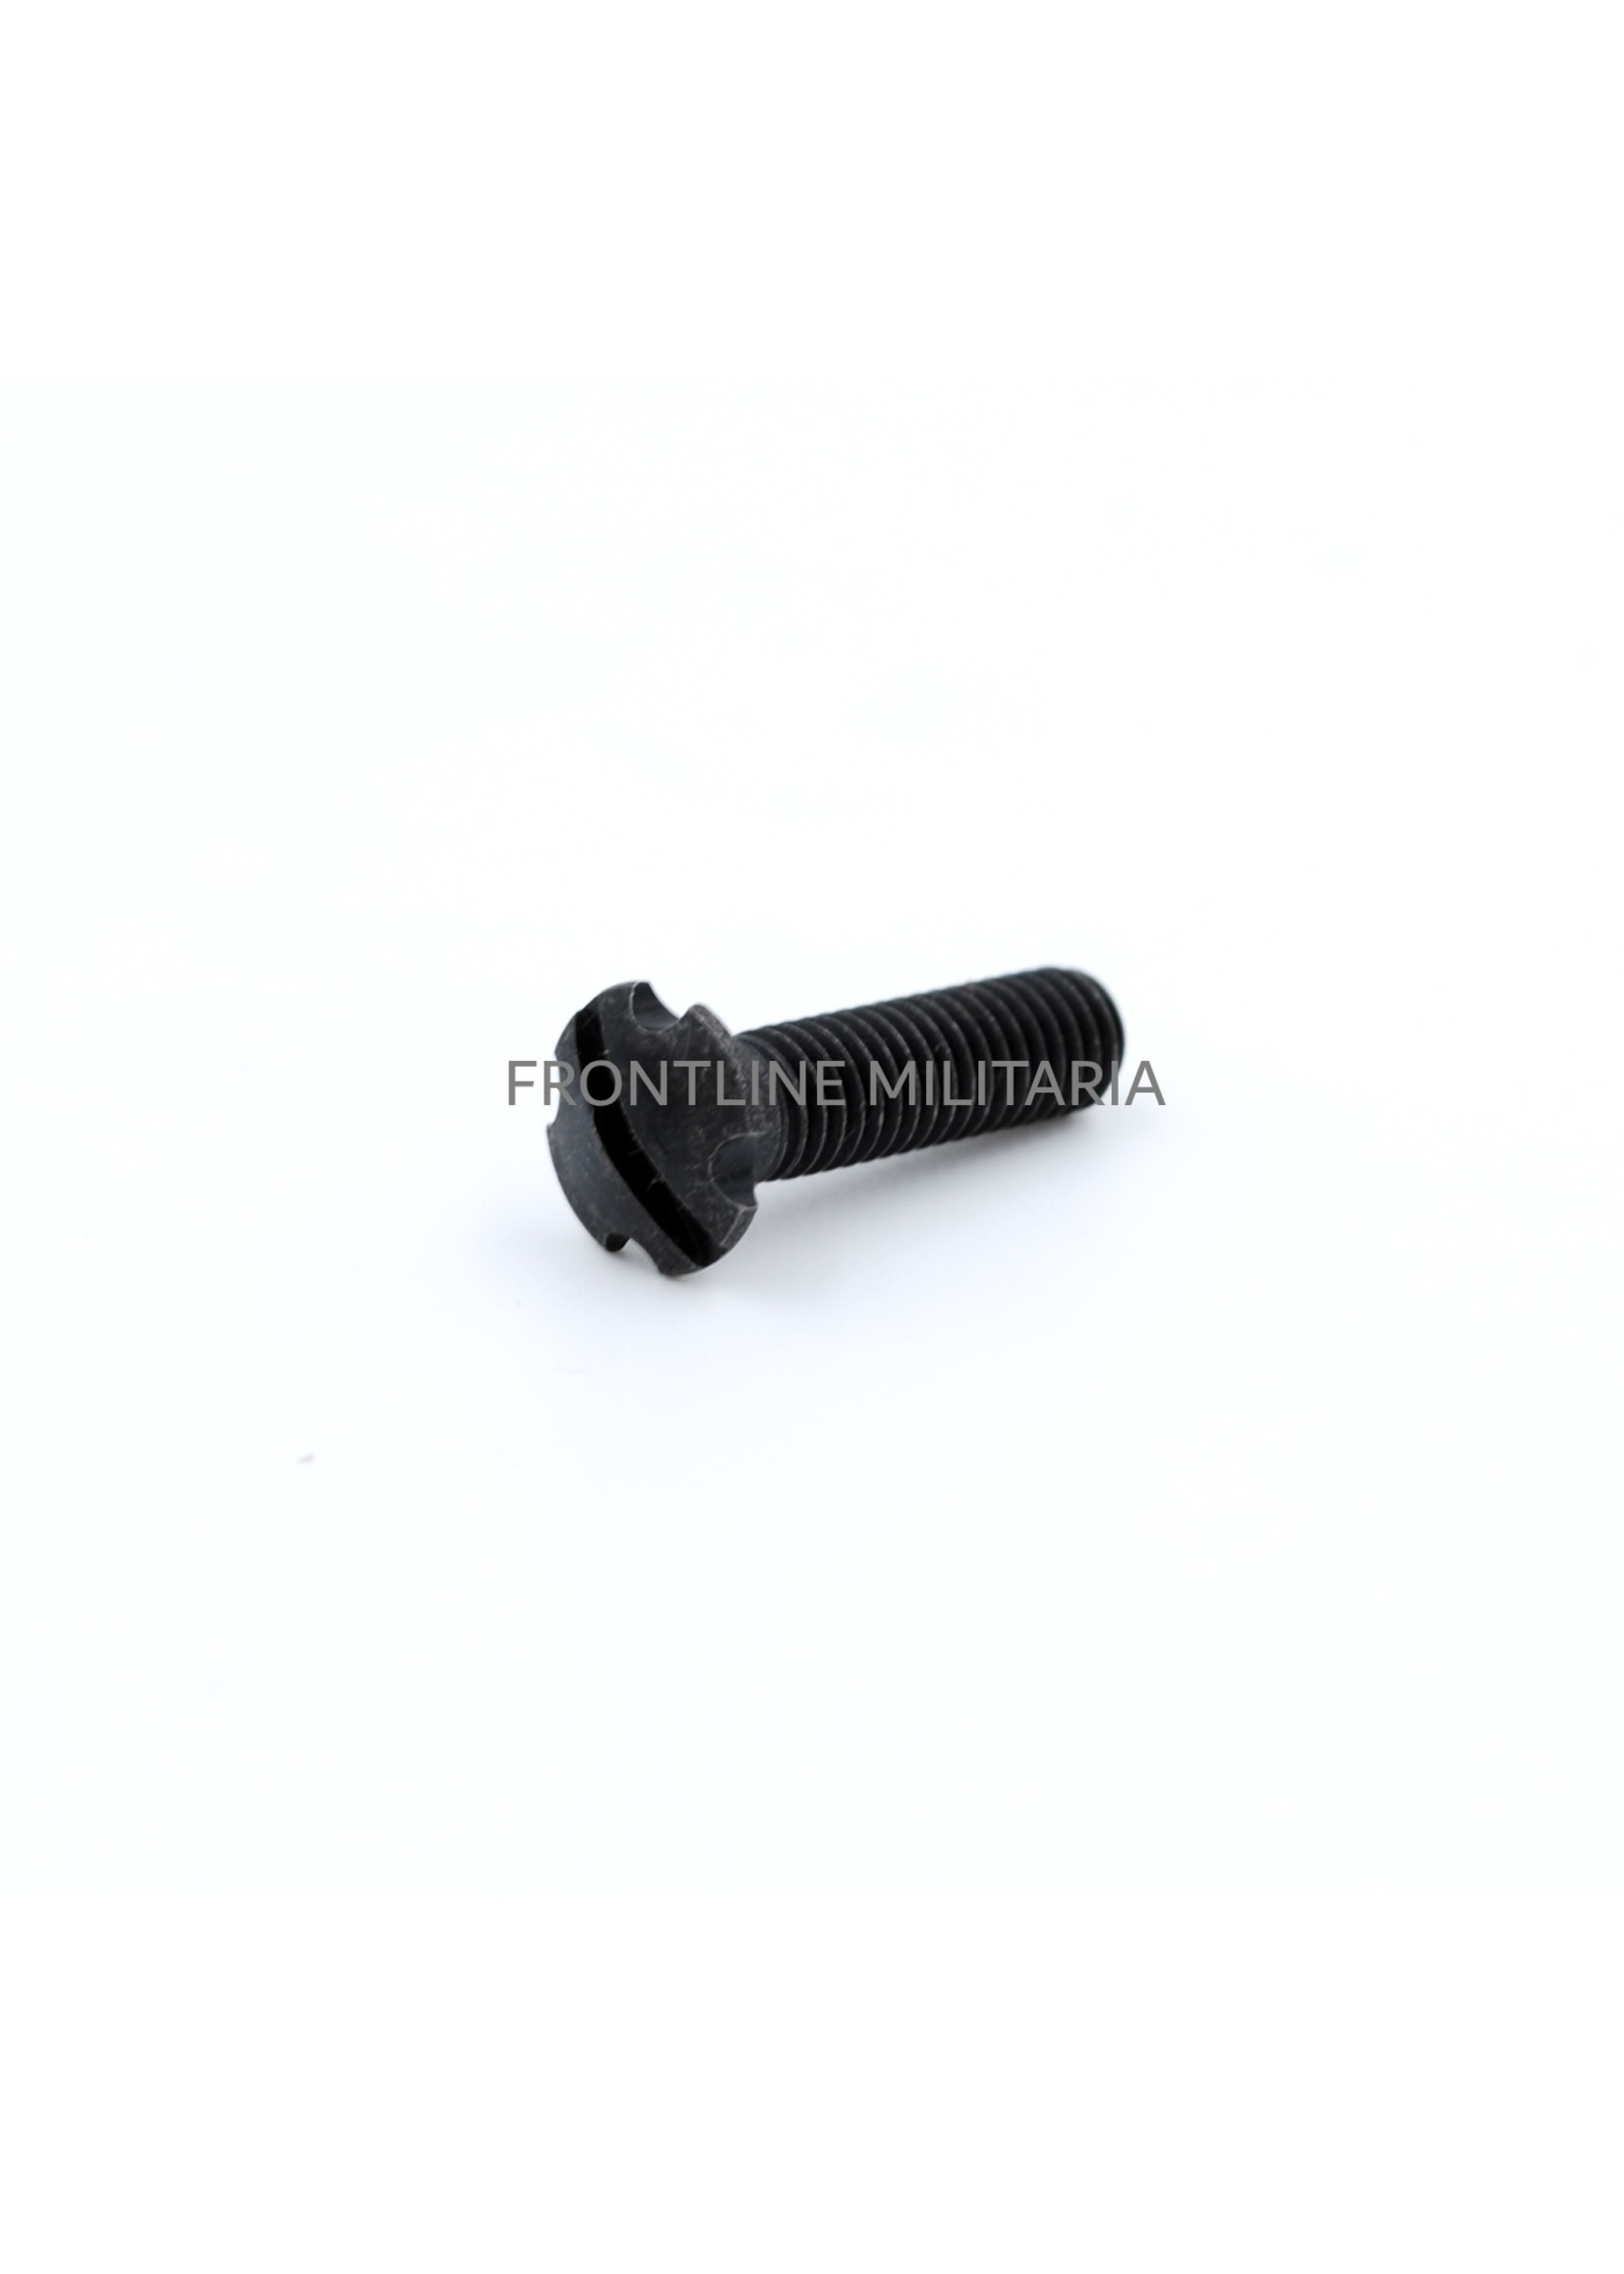 System screw for the G43 and K43 Rifle